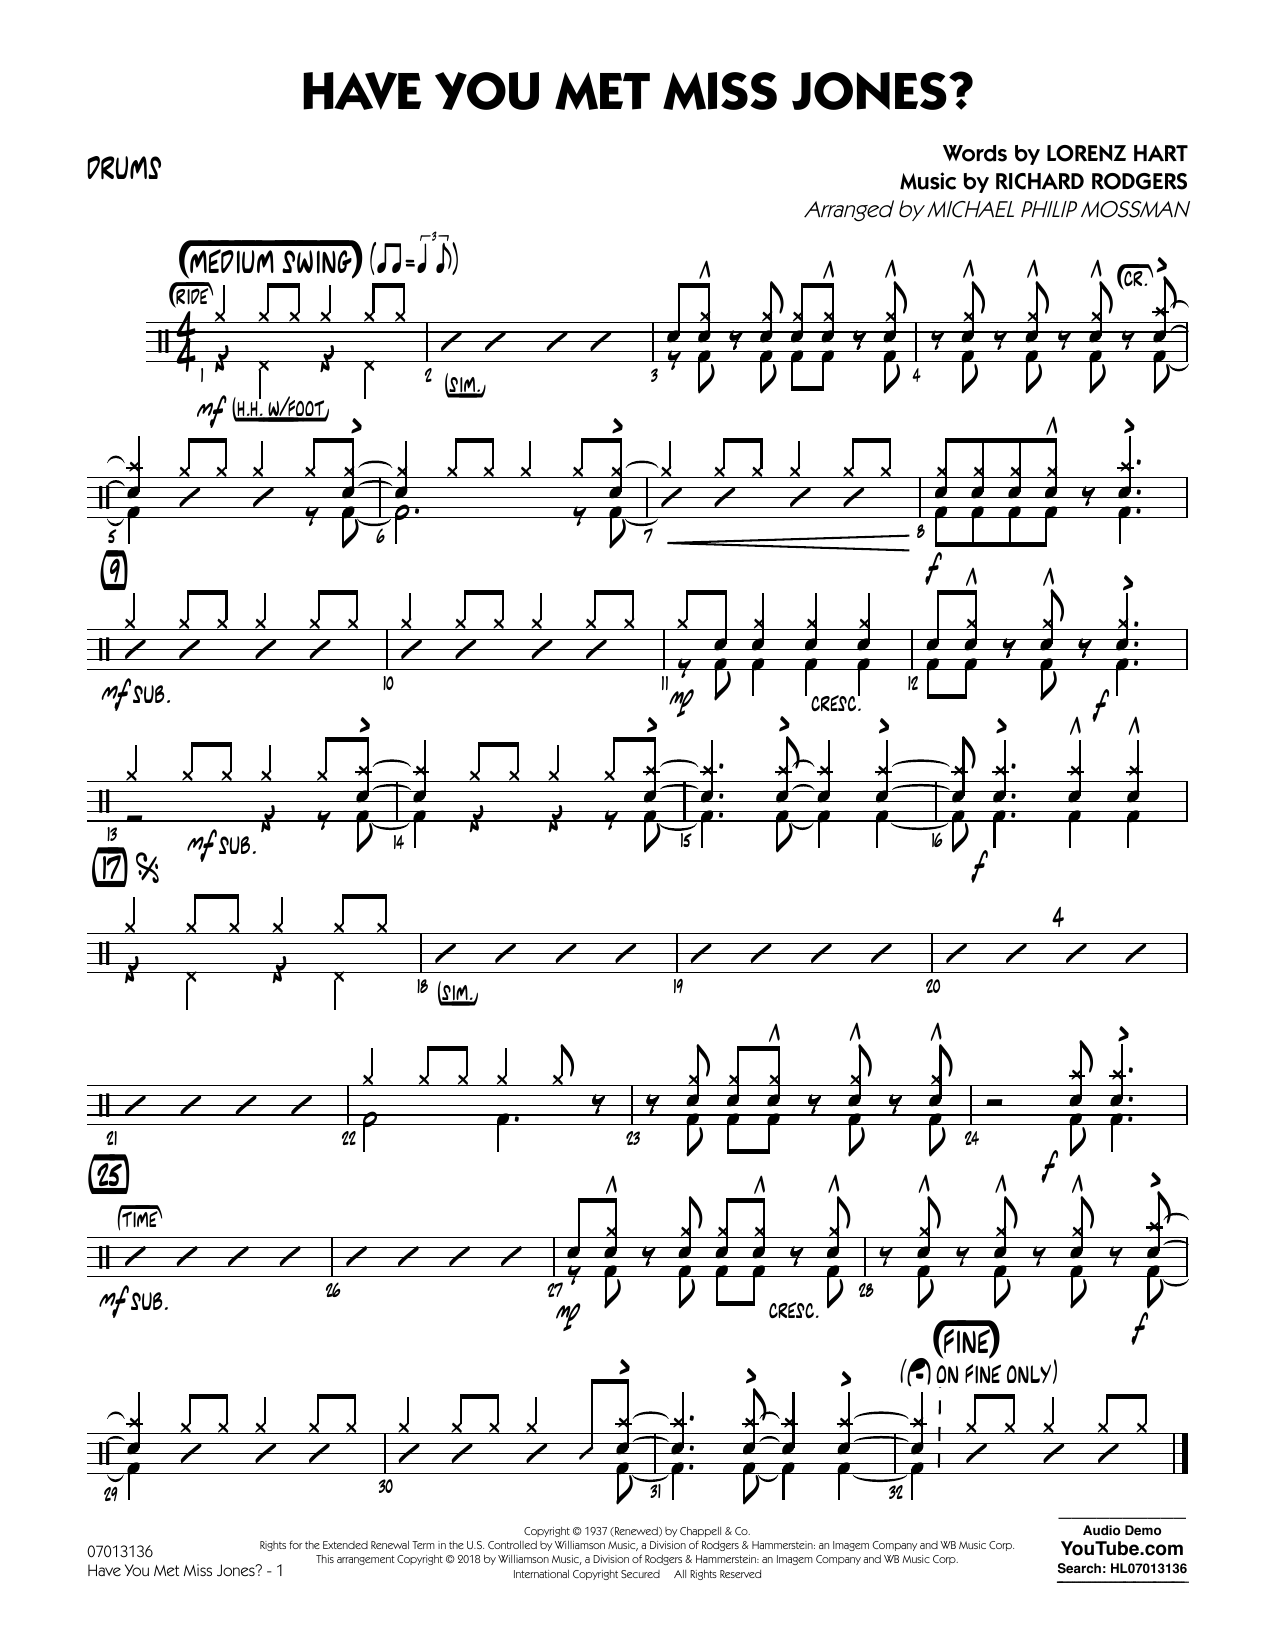 Rodgers & Hart Have You Met Miss Jones? (arr. Michael Mossman) - Drums sheet music notes and chords. Download Printable PDF.